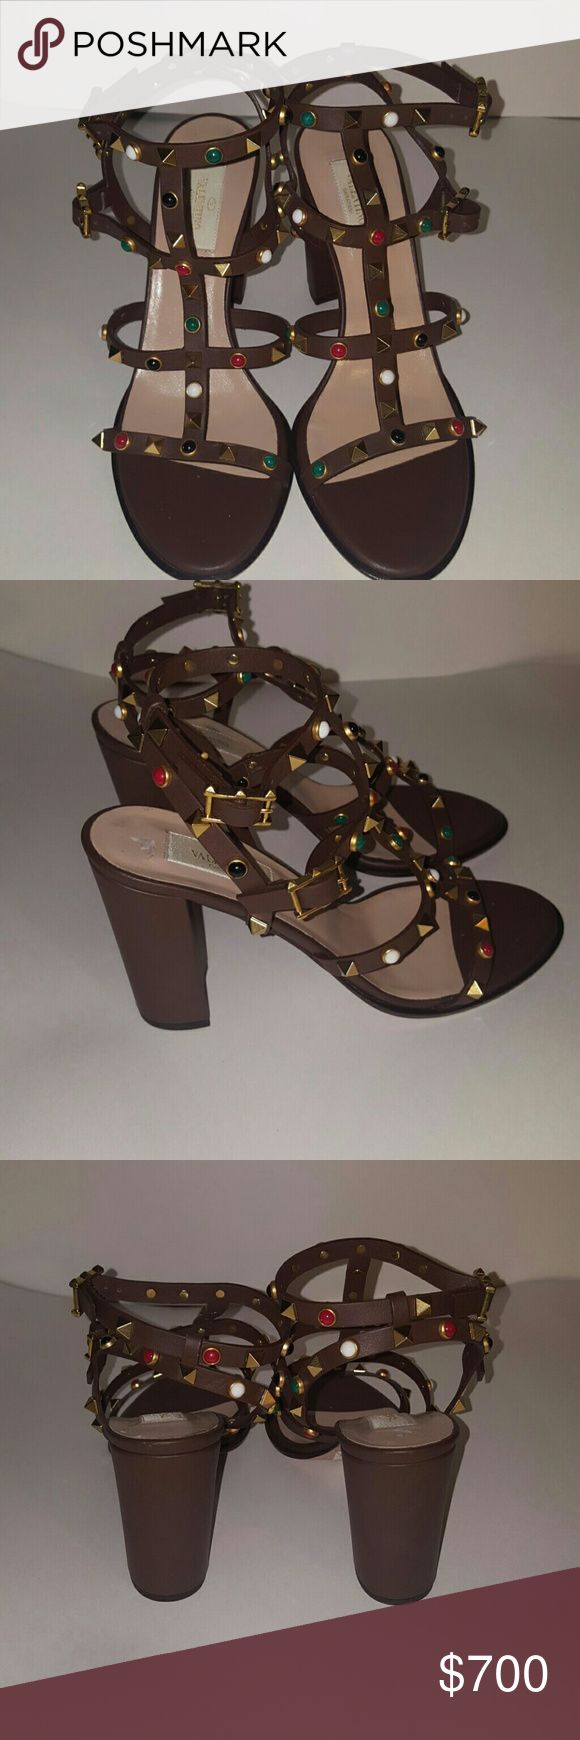 SALE RockStud Rolling Sandal Brand New Gorgeous pair of Rock studs Valentino Shoes Heels